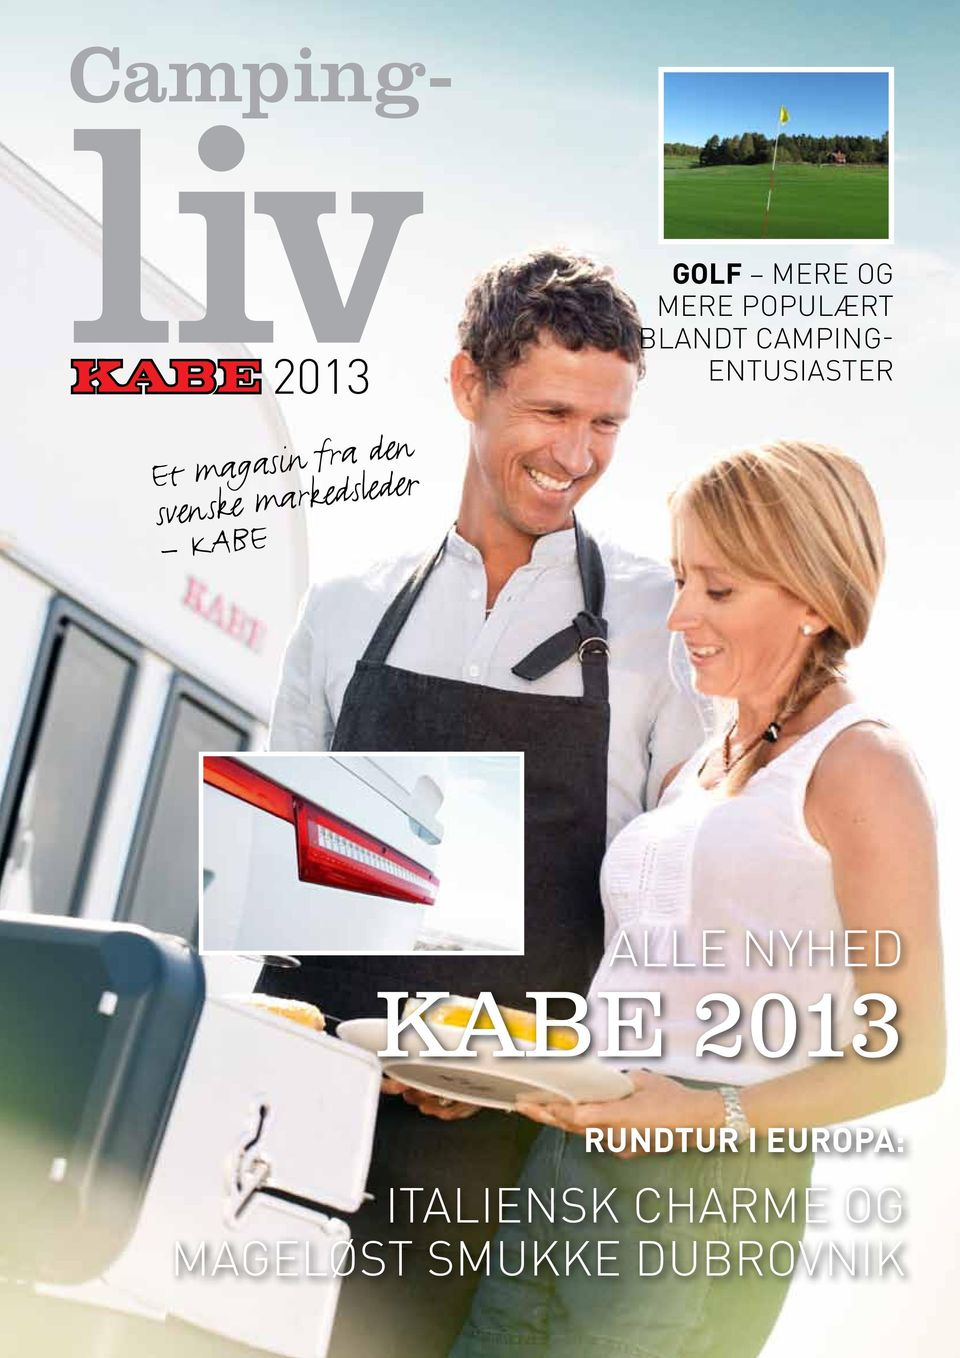 BLANDT CAMPING- ENTUSIASTER ALLE NYHED KABE 2013